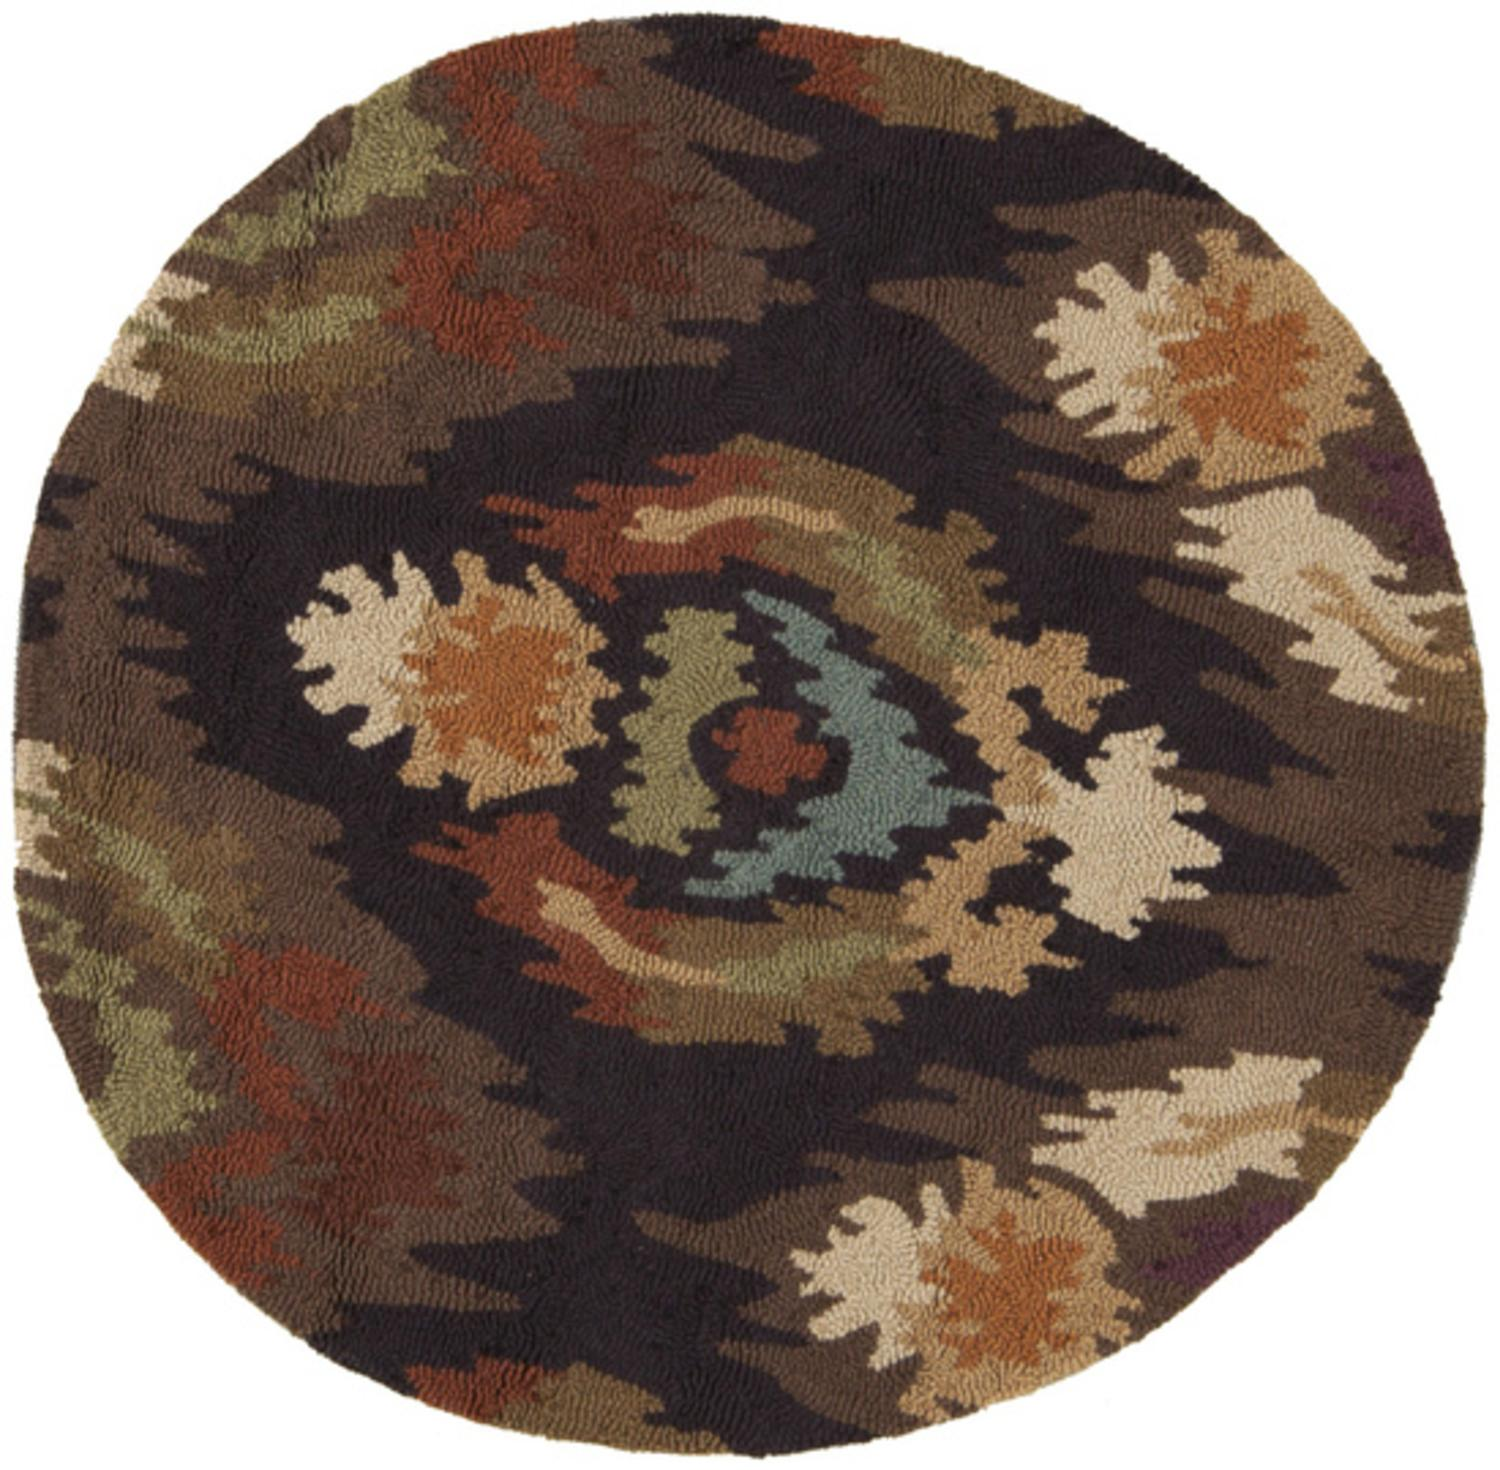 3' Adobe Flame Dark Pecan, Cumin and Espresso Hand Hooked Round Area Throw Rug